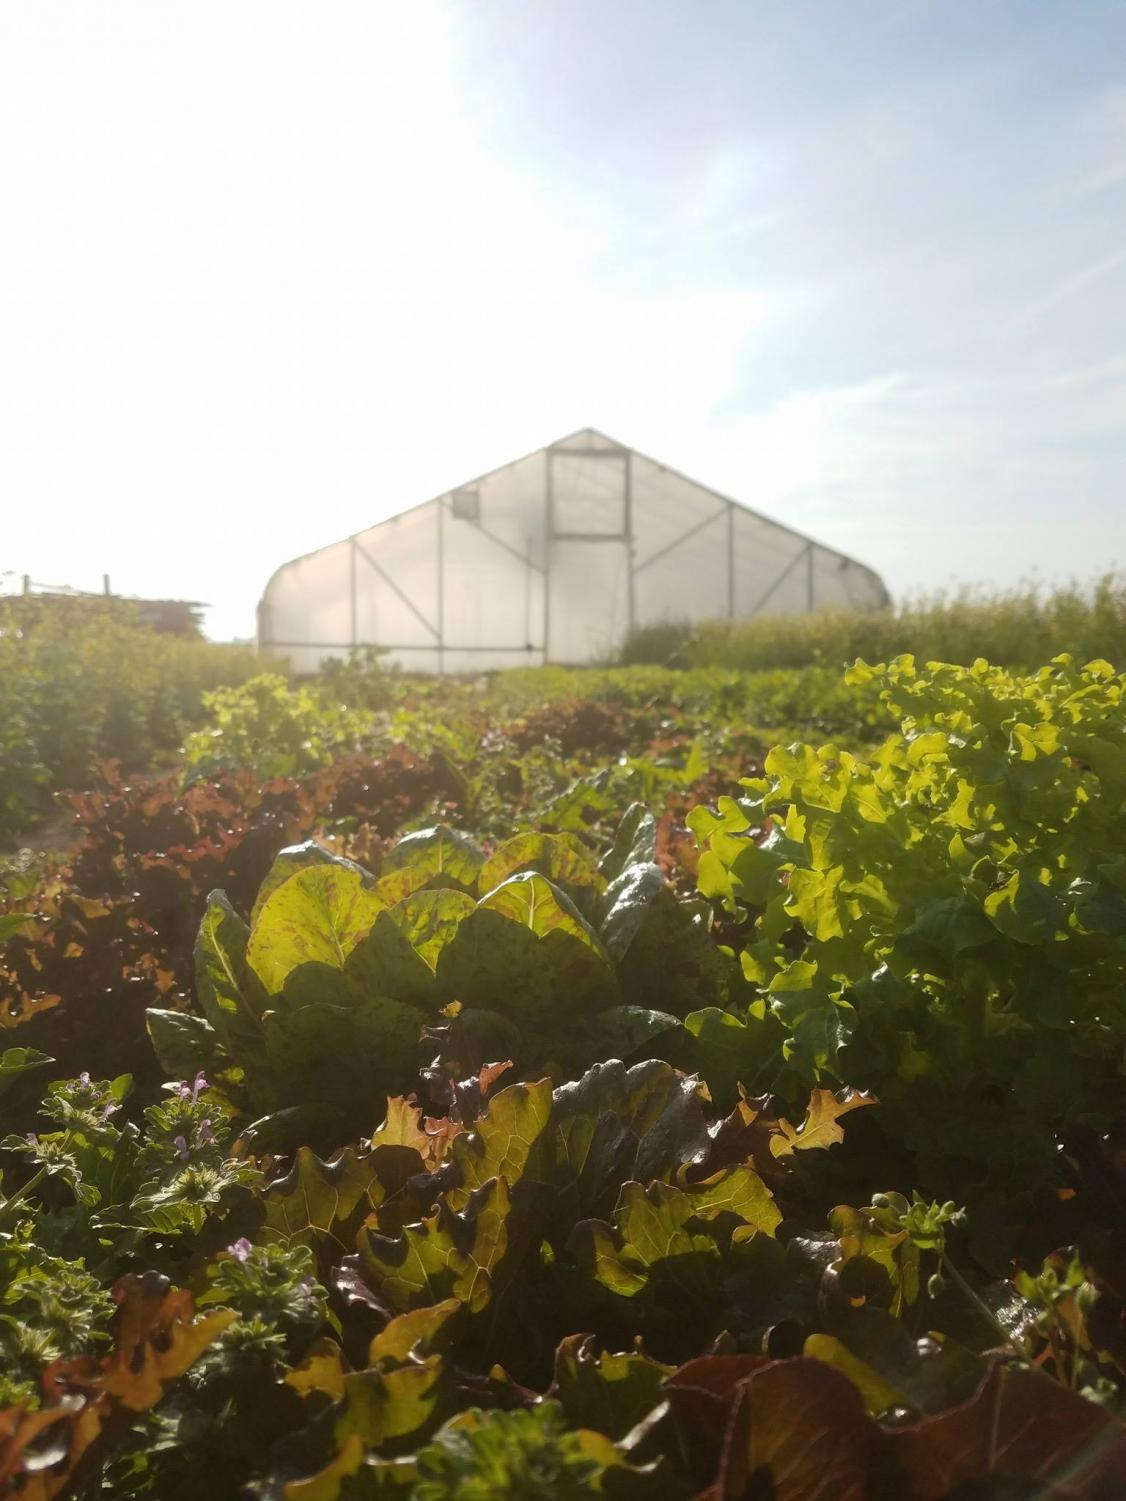 The Blue Moon Farm in Urbana grows vegetables for local farmer's markets, restaurants and stores. The farm consists of 20 acres dedicated to vegetable production, and 10 high tunnels totaling just under half an acre of year-round production.